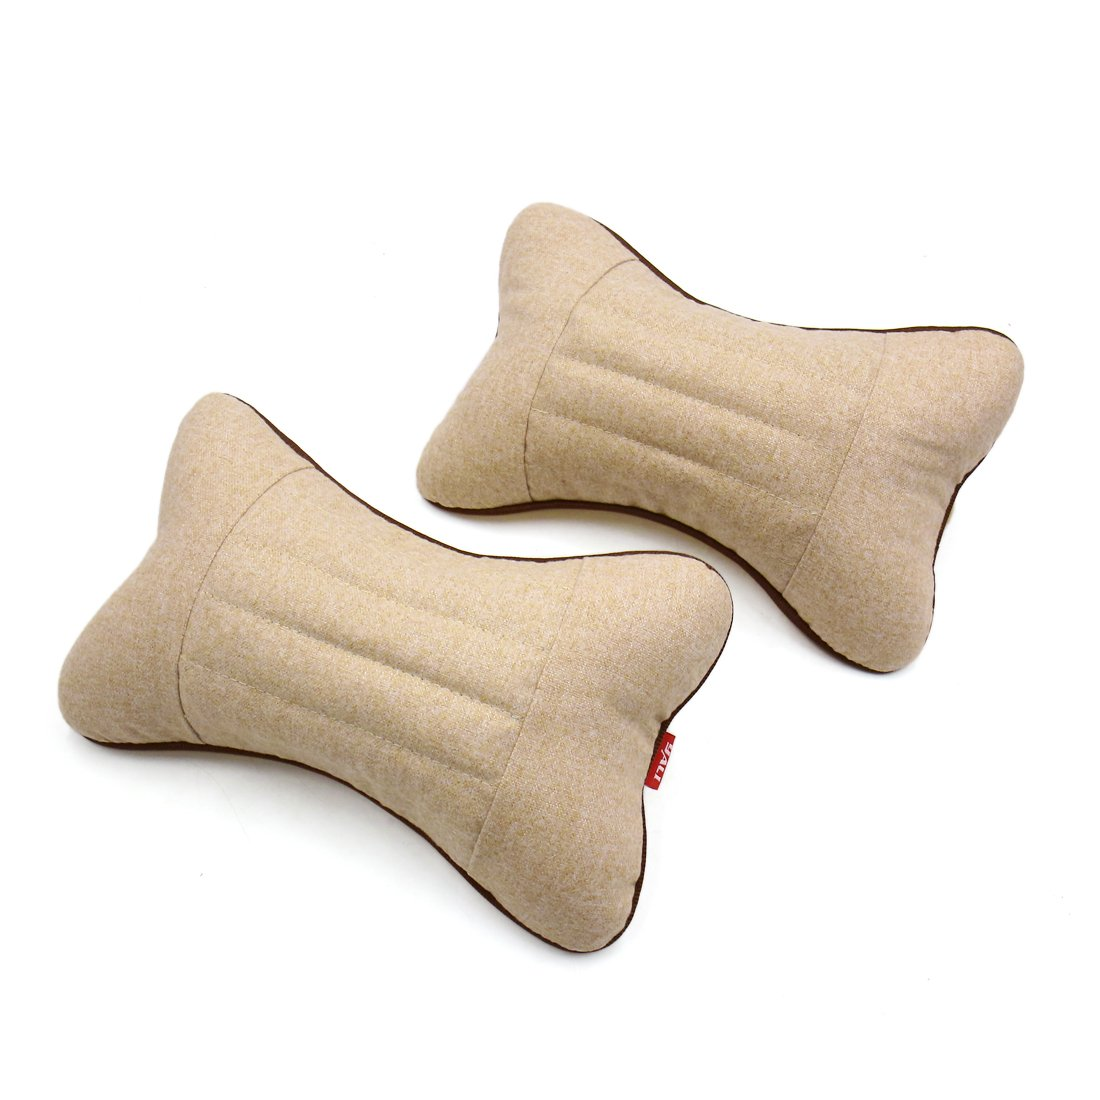 uxcell 2 Pcs Bone Shape Cassia Seed Car Seat Headrest Pillow Neck Support Cushion Beige